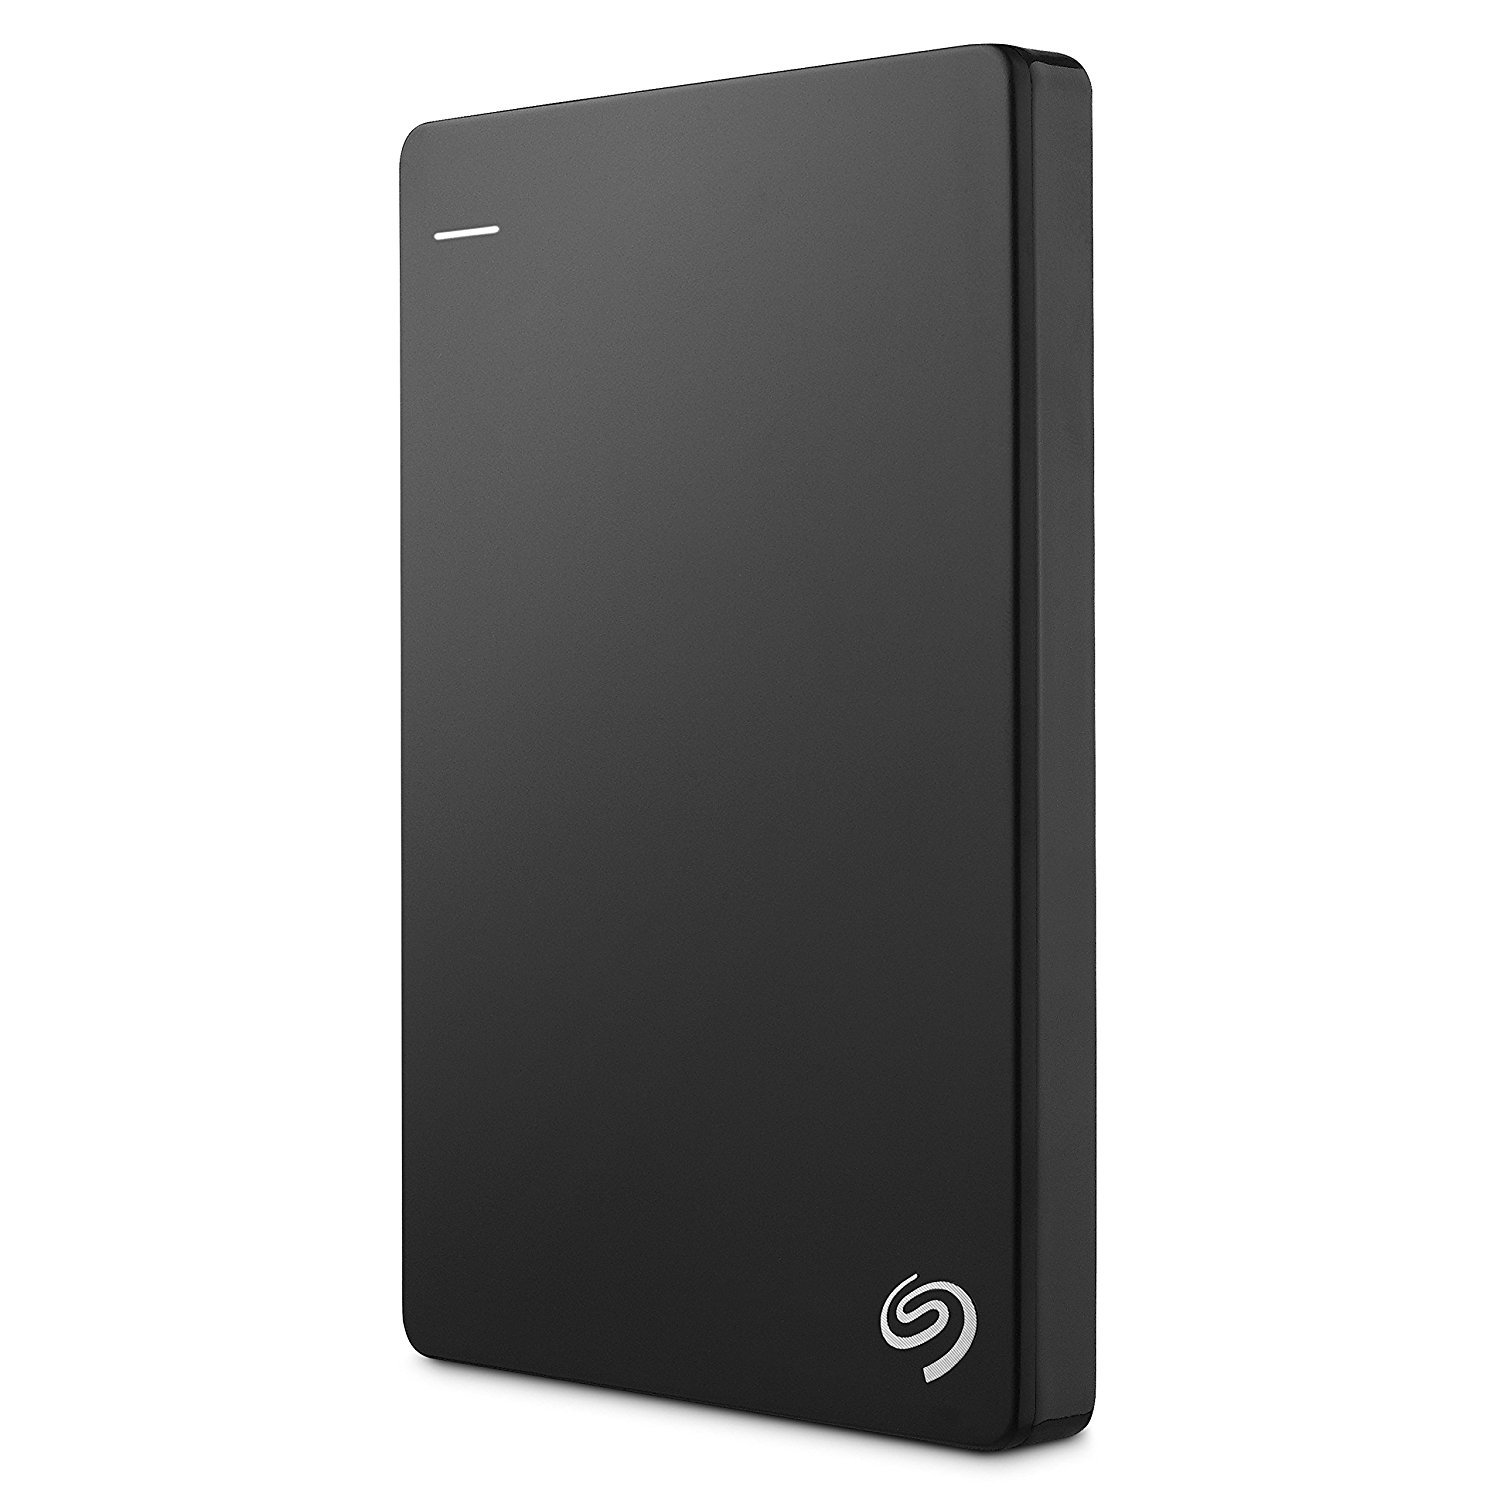 Best External Seagate Hard Drive in India